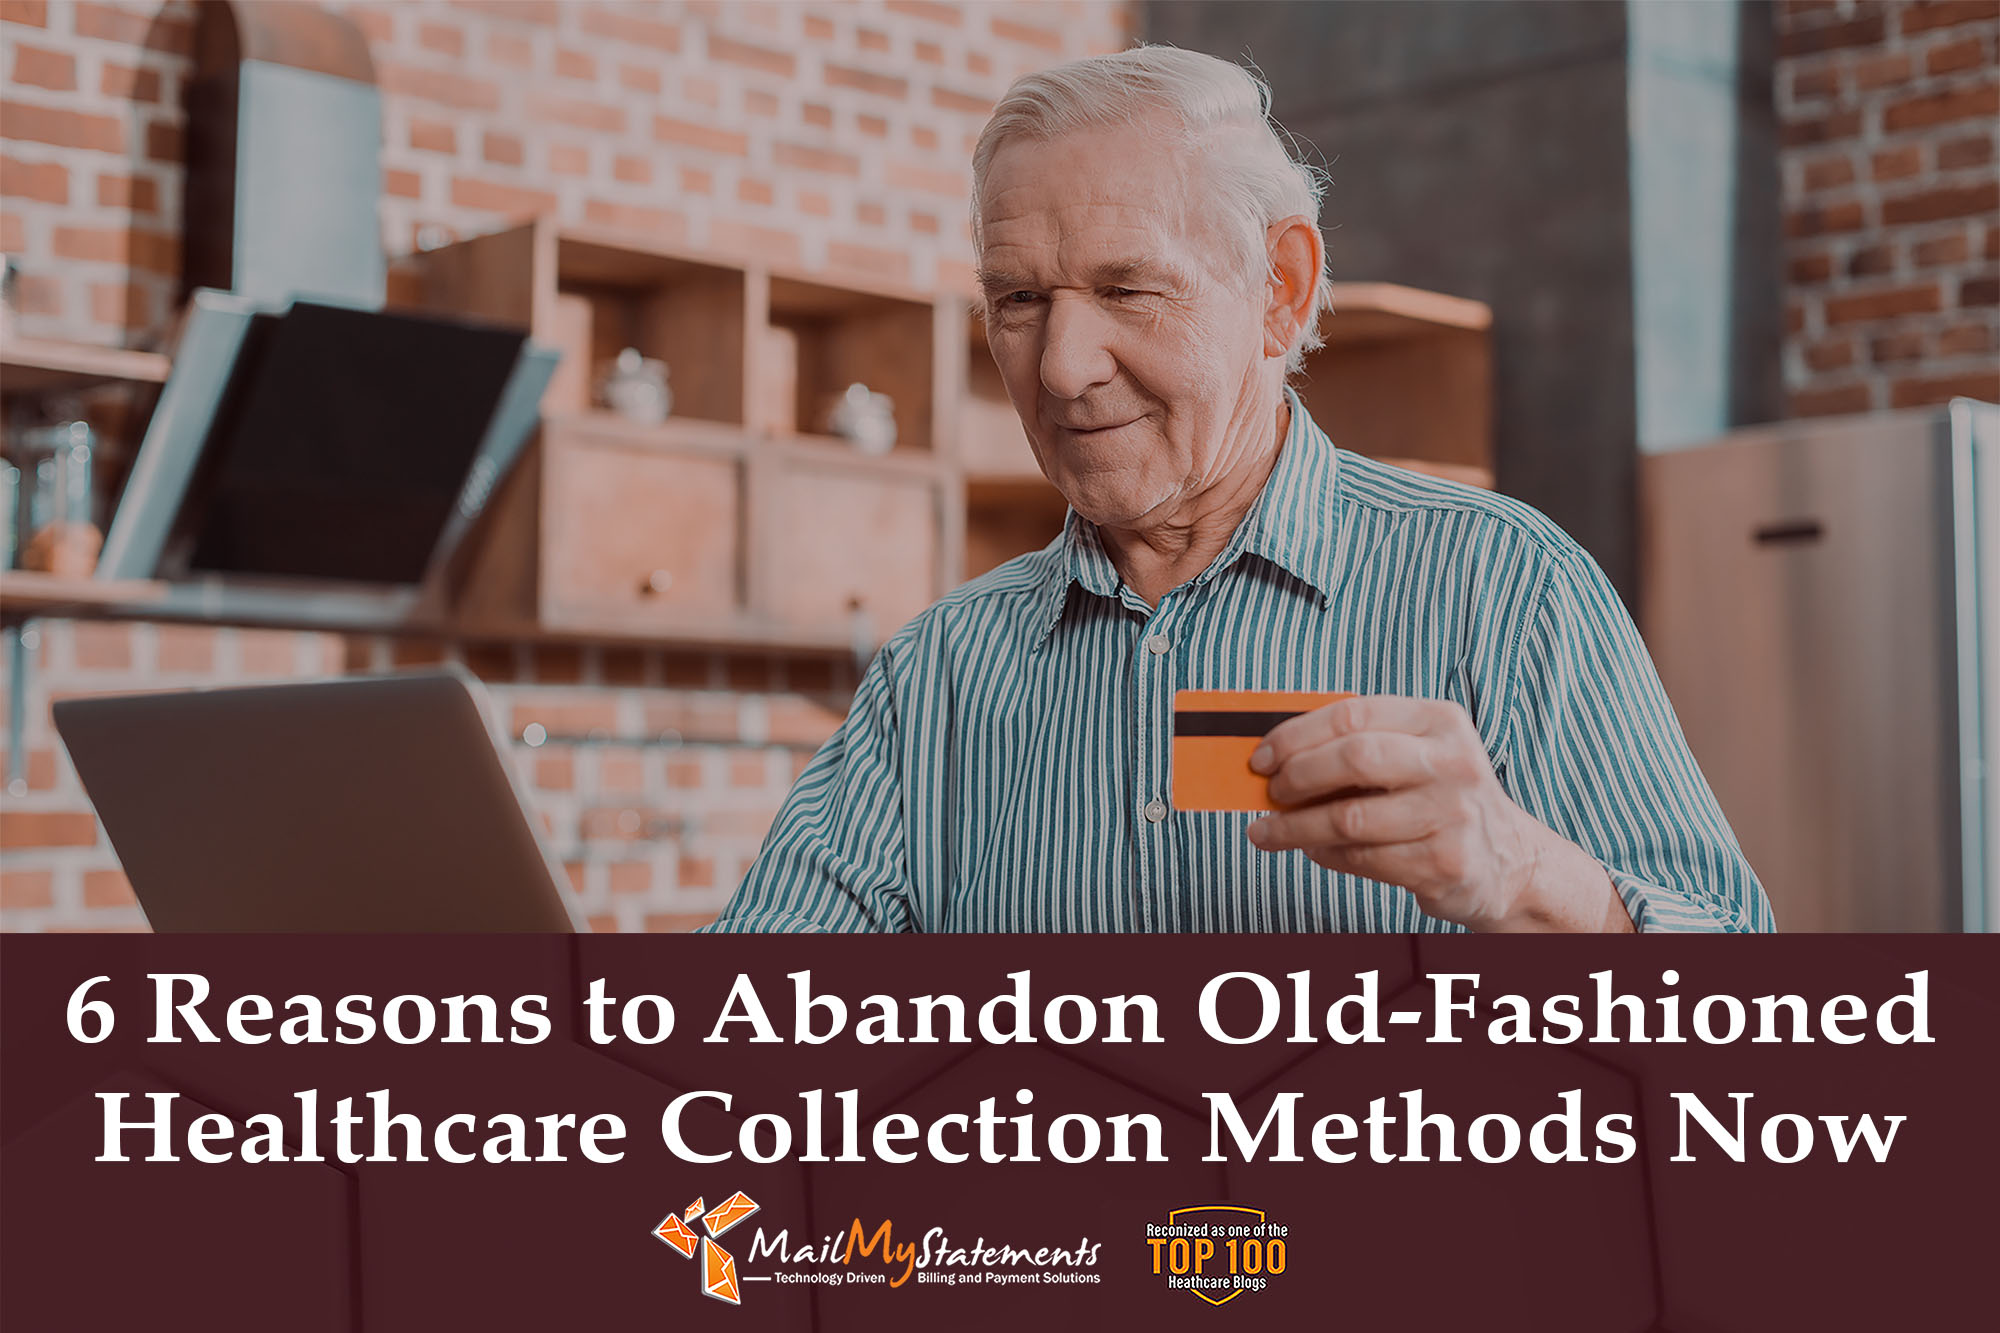 6 Reasons to Abandon Old-Fashioned Healthcare Collection Methods Now